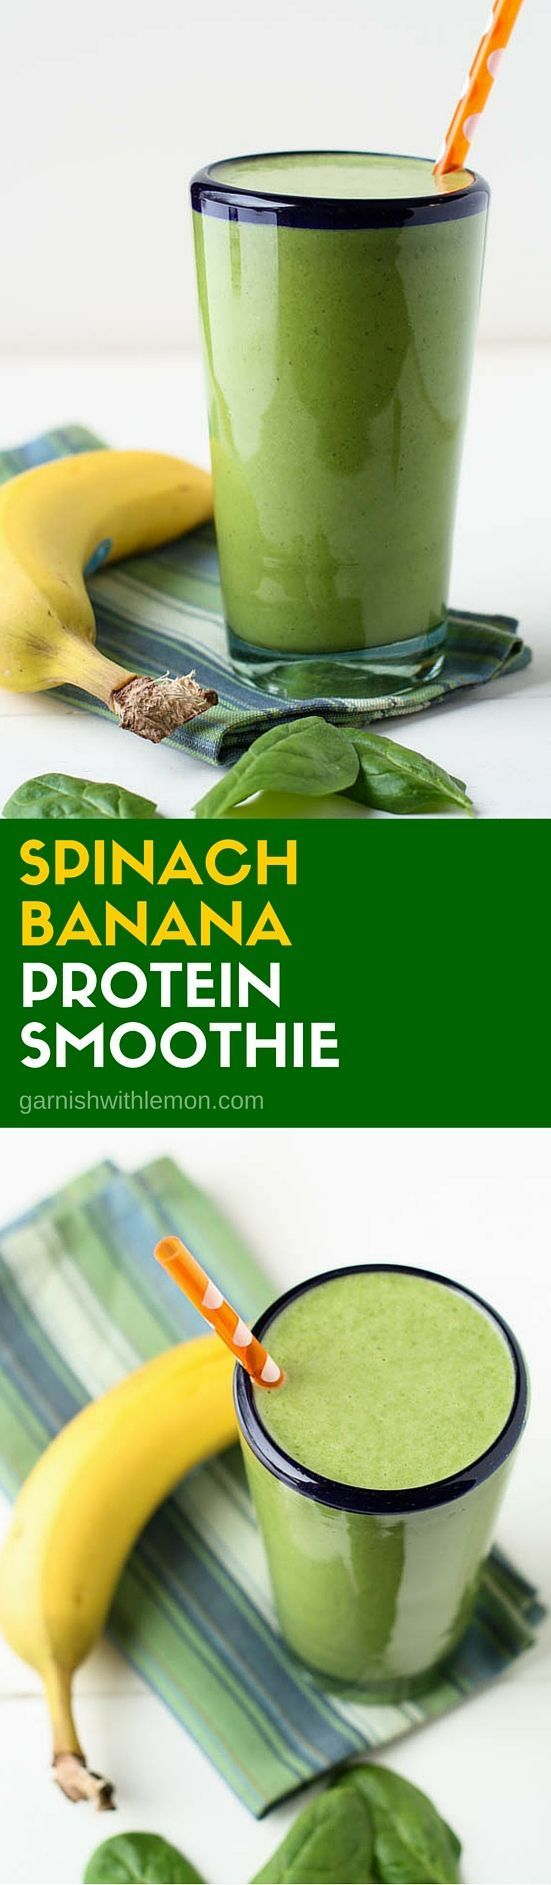 Start your day on the right foot with a healthy, filling breakfast. This Spinach Banana Protein Smoothie recipe will keep you going until lunch! #breakfast #smoothie